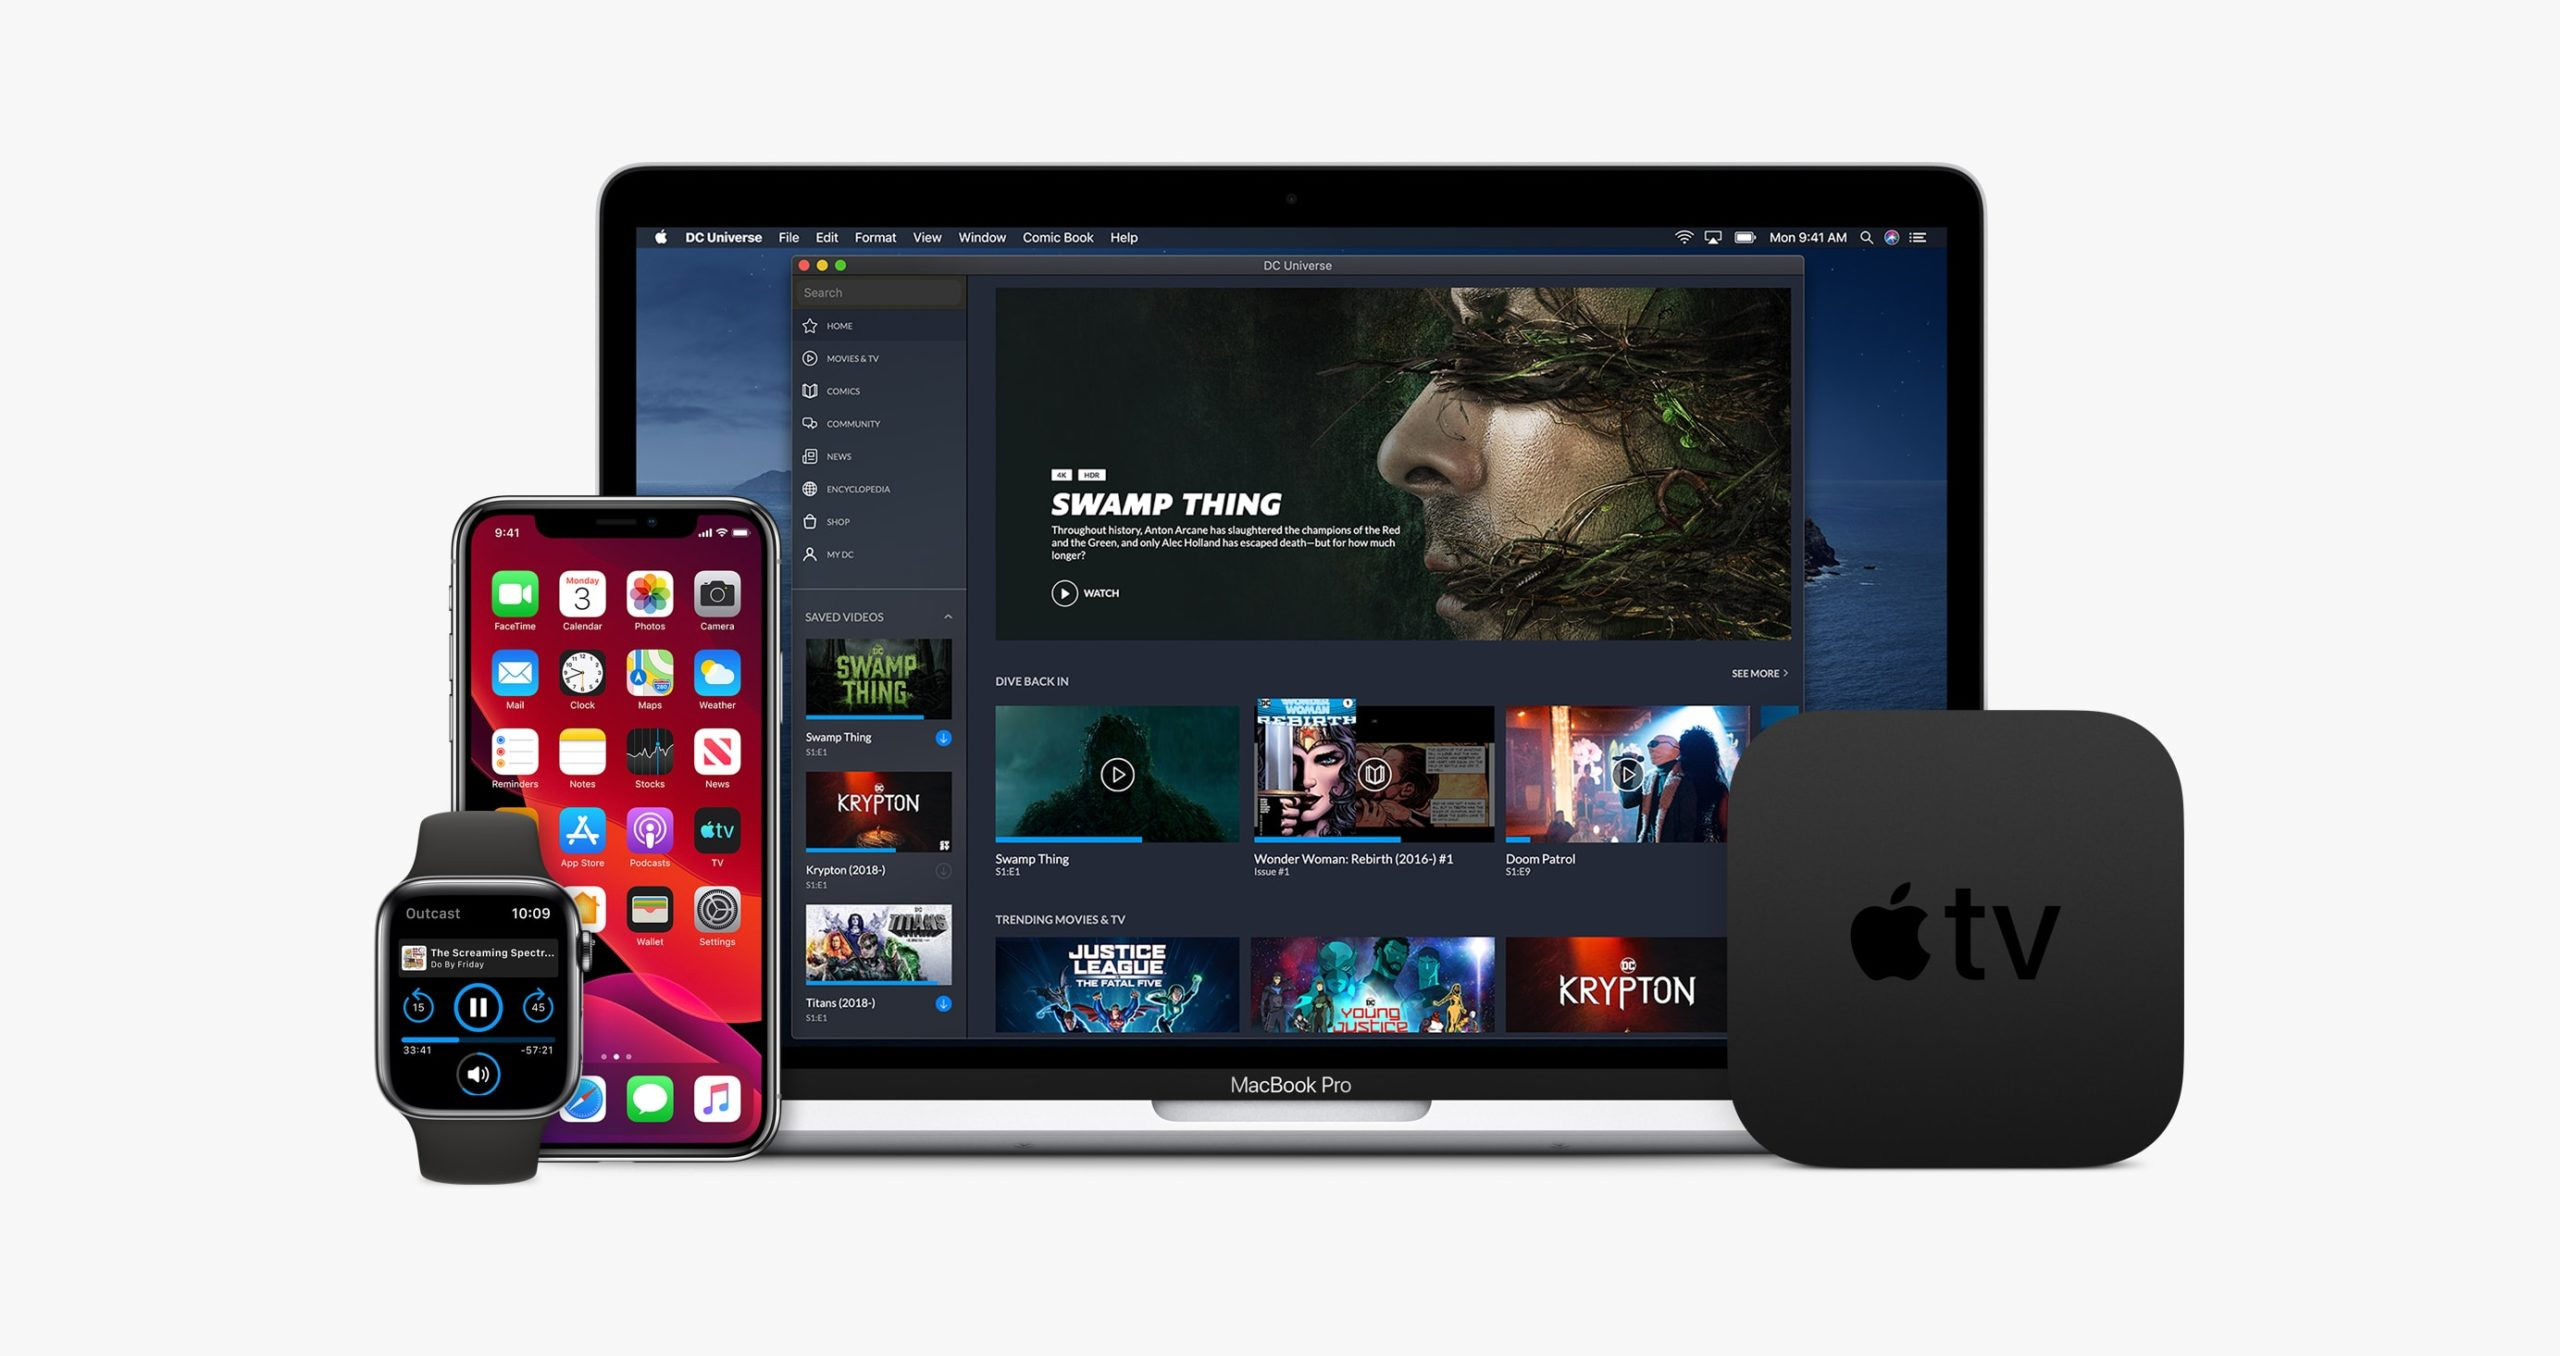 Dispositivos da Apple - Apple Watch (watchOS 6), iPhone (iOS 13), MacBook Pro (macOS Catalina 10.15) e Apple TV (tvOS 13)